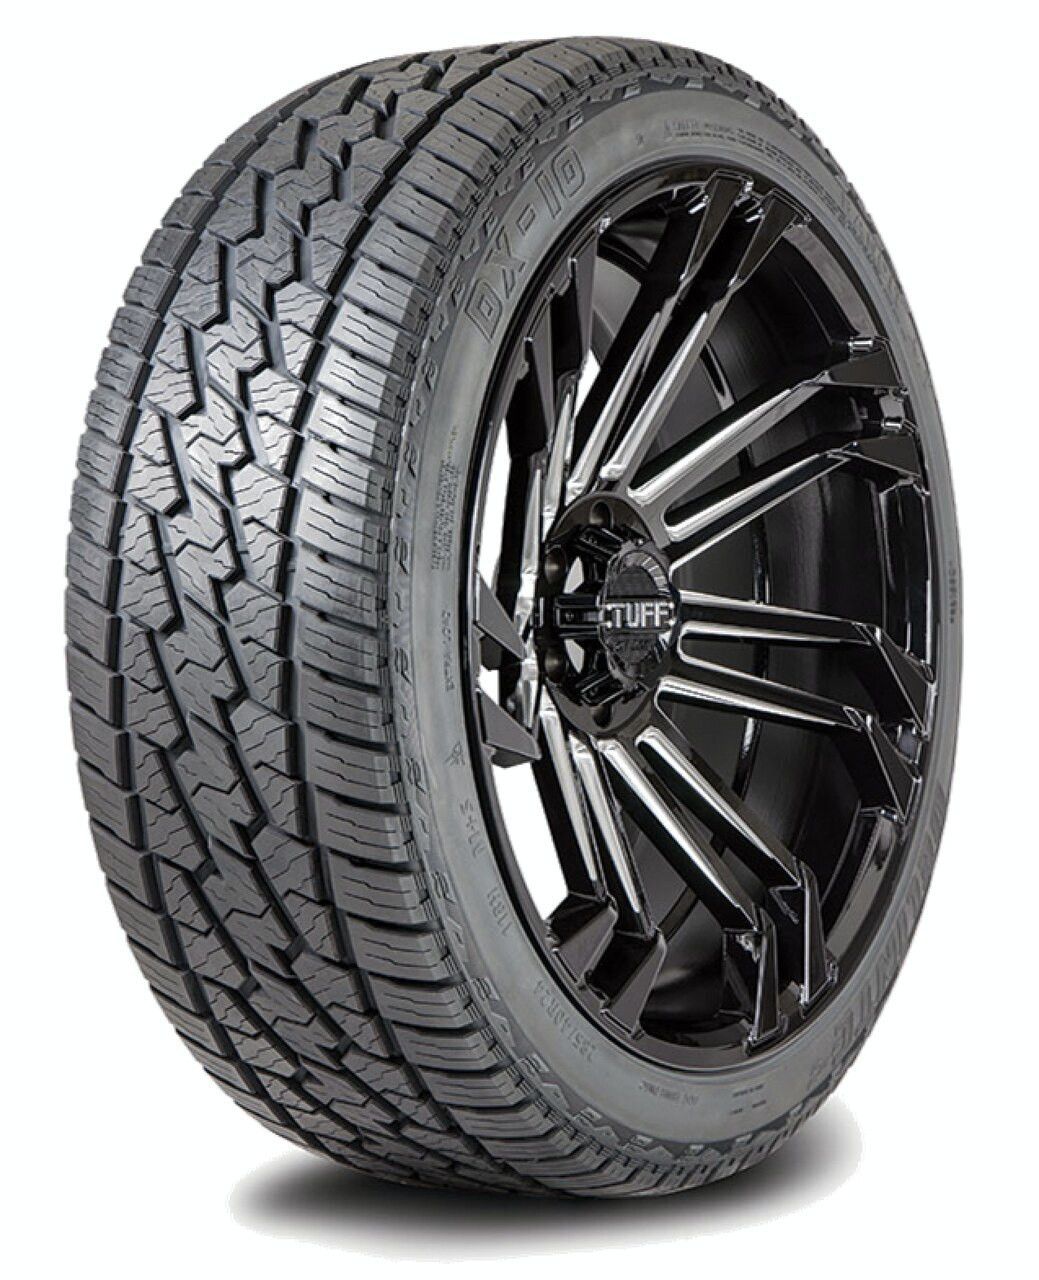 31X10.50R15LT 109S DELINTE DX-10 AT C/6 RBL